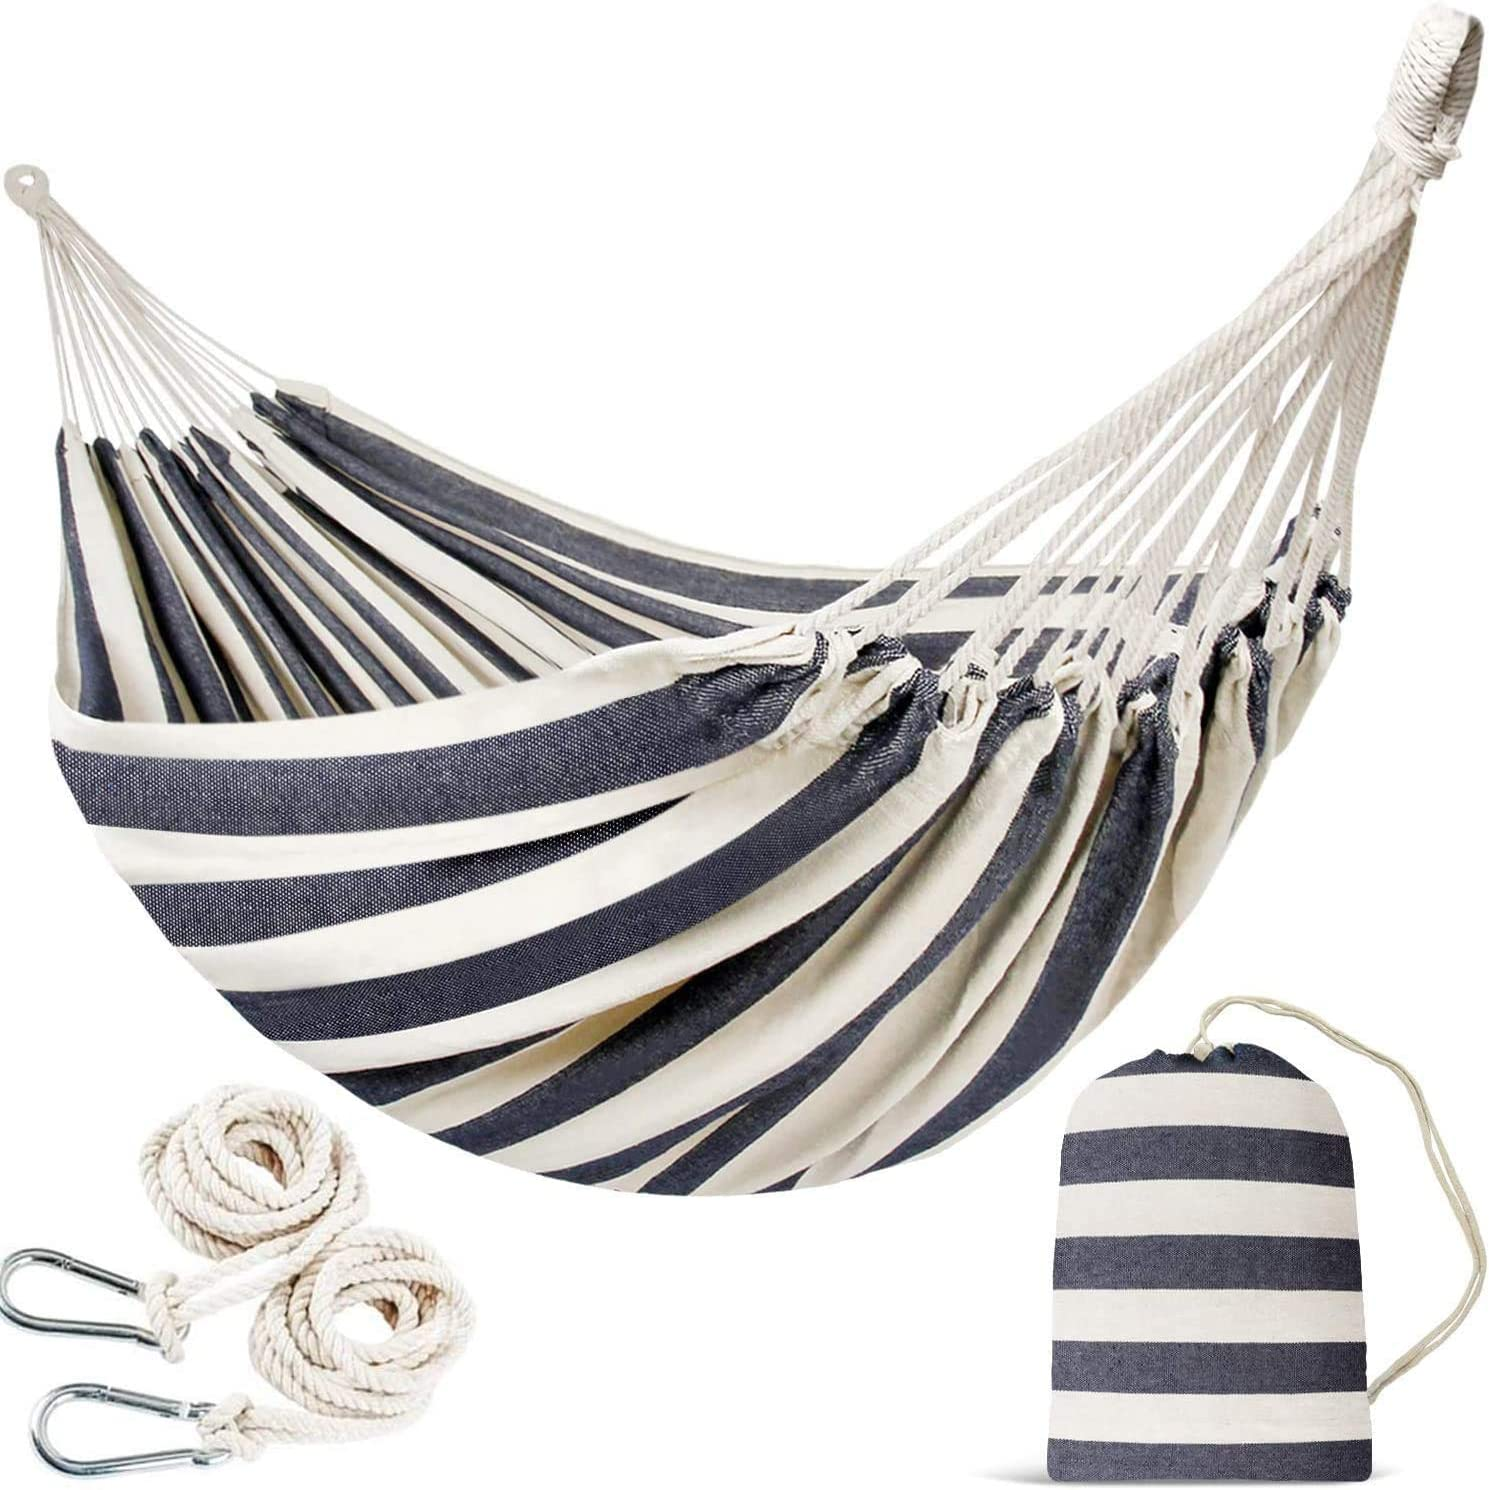 INNO STAGE Double Portable Hammock - Patio Hammock Two Person Hanging Camping Bed for Patio, Backyard, Porch, Outdoor and Indoor Use - Soft Woven Cotton Fabric Hammocks with Portable Carrying Bag